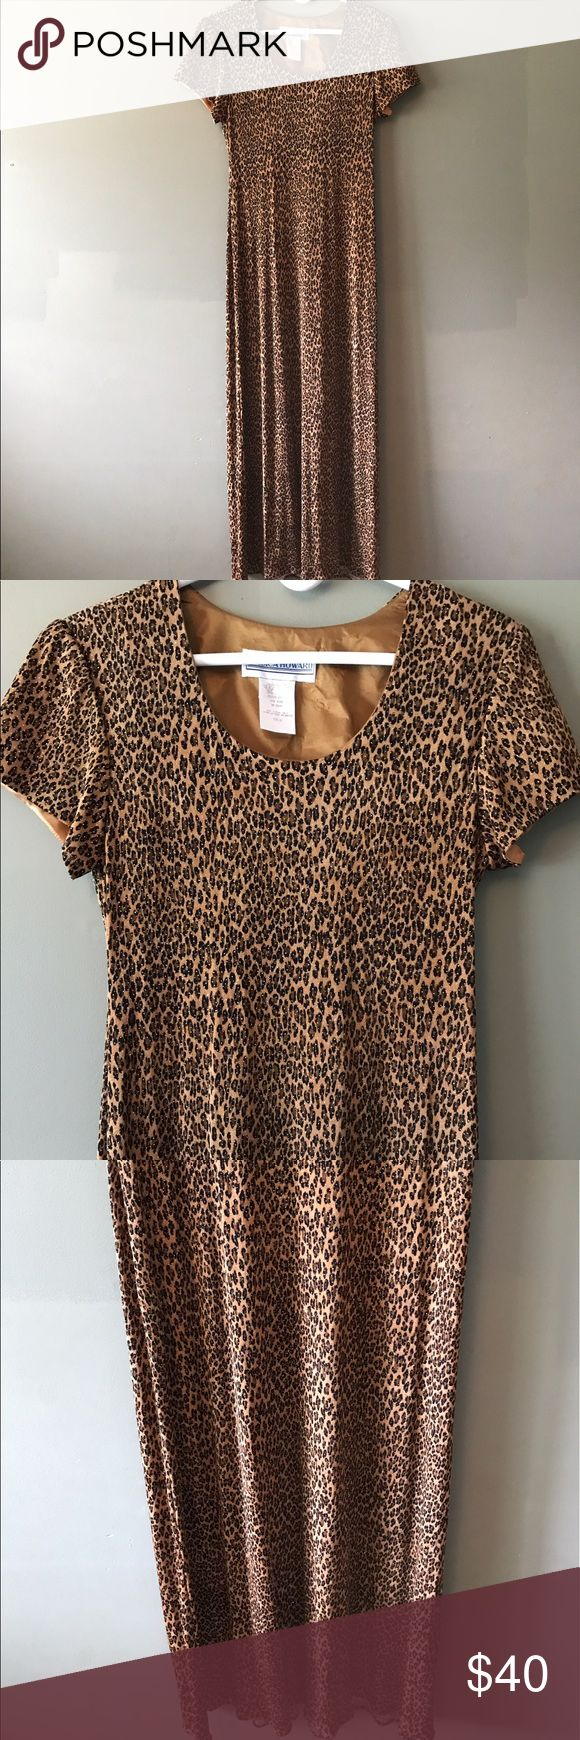 Jessica Howard Animal Print Long Sequin Dress! Jessica Howard Animal Print Sequin Dress. Size 12. Excellent condition! Gold, brown, black, and glitter! This is a steal! Grab it before it's gone. I found this in my mom's closet. Gorgeous dress!! Jessica Howard Dresses Maxi